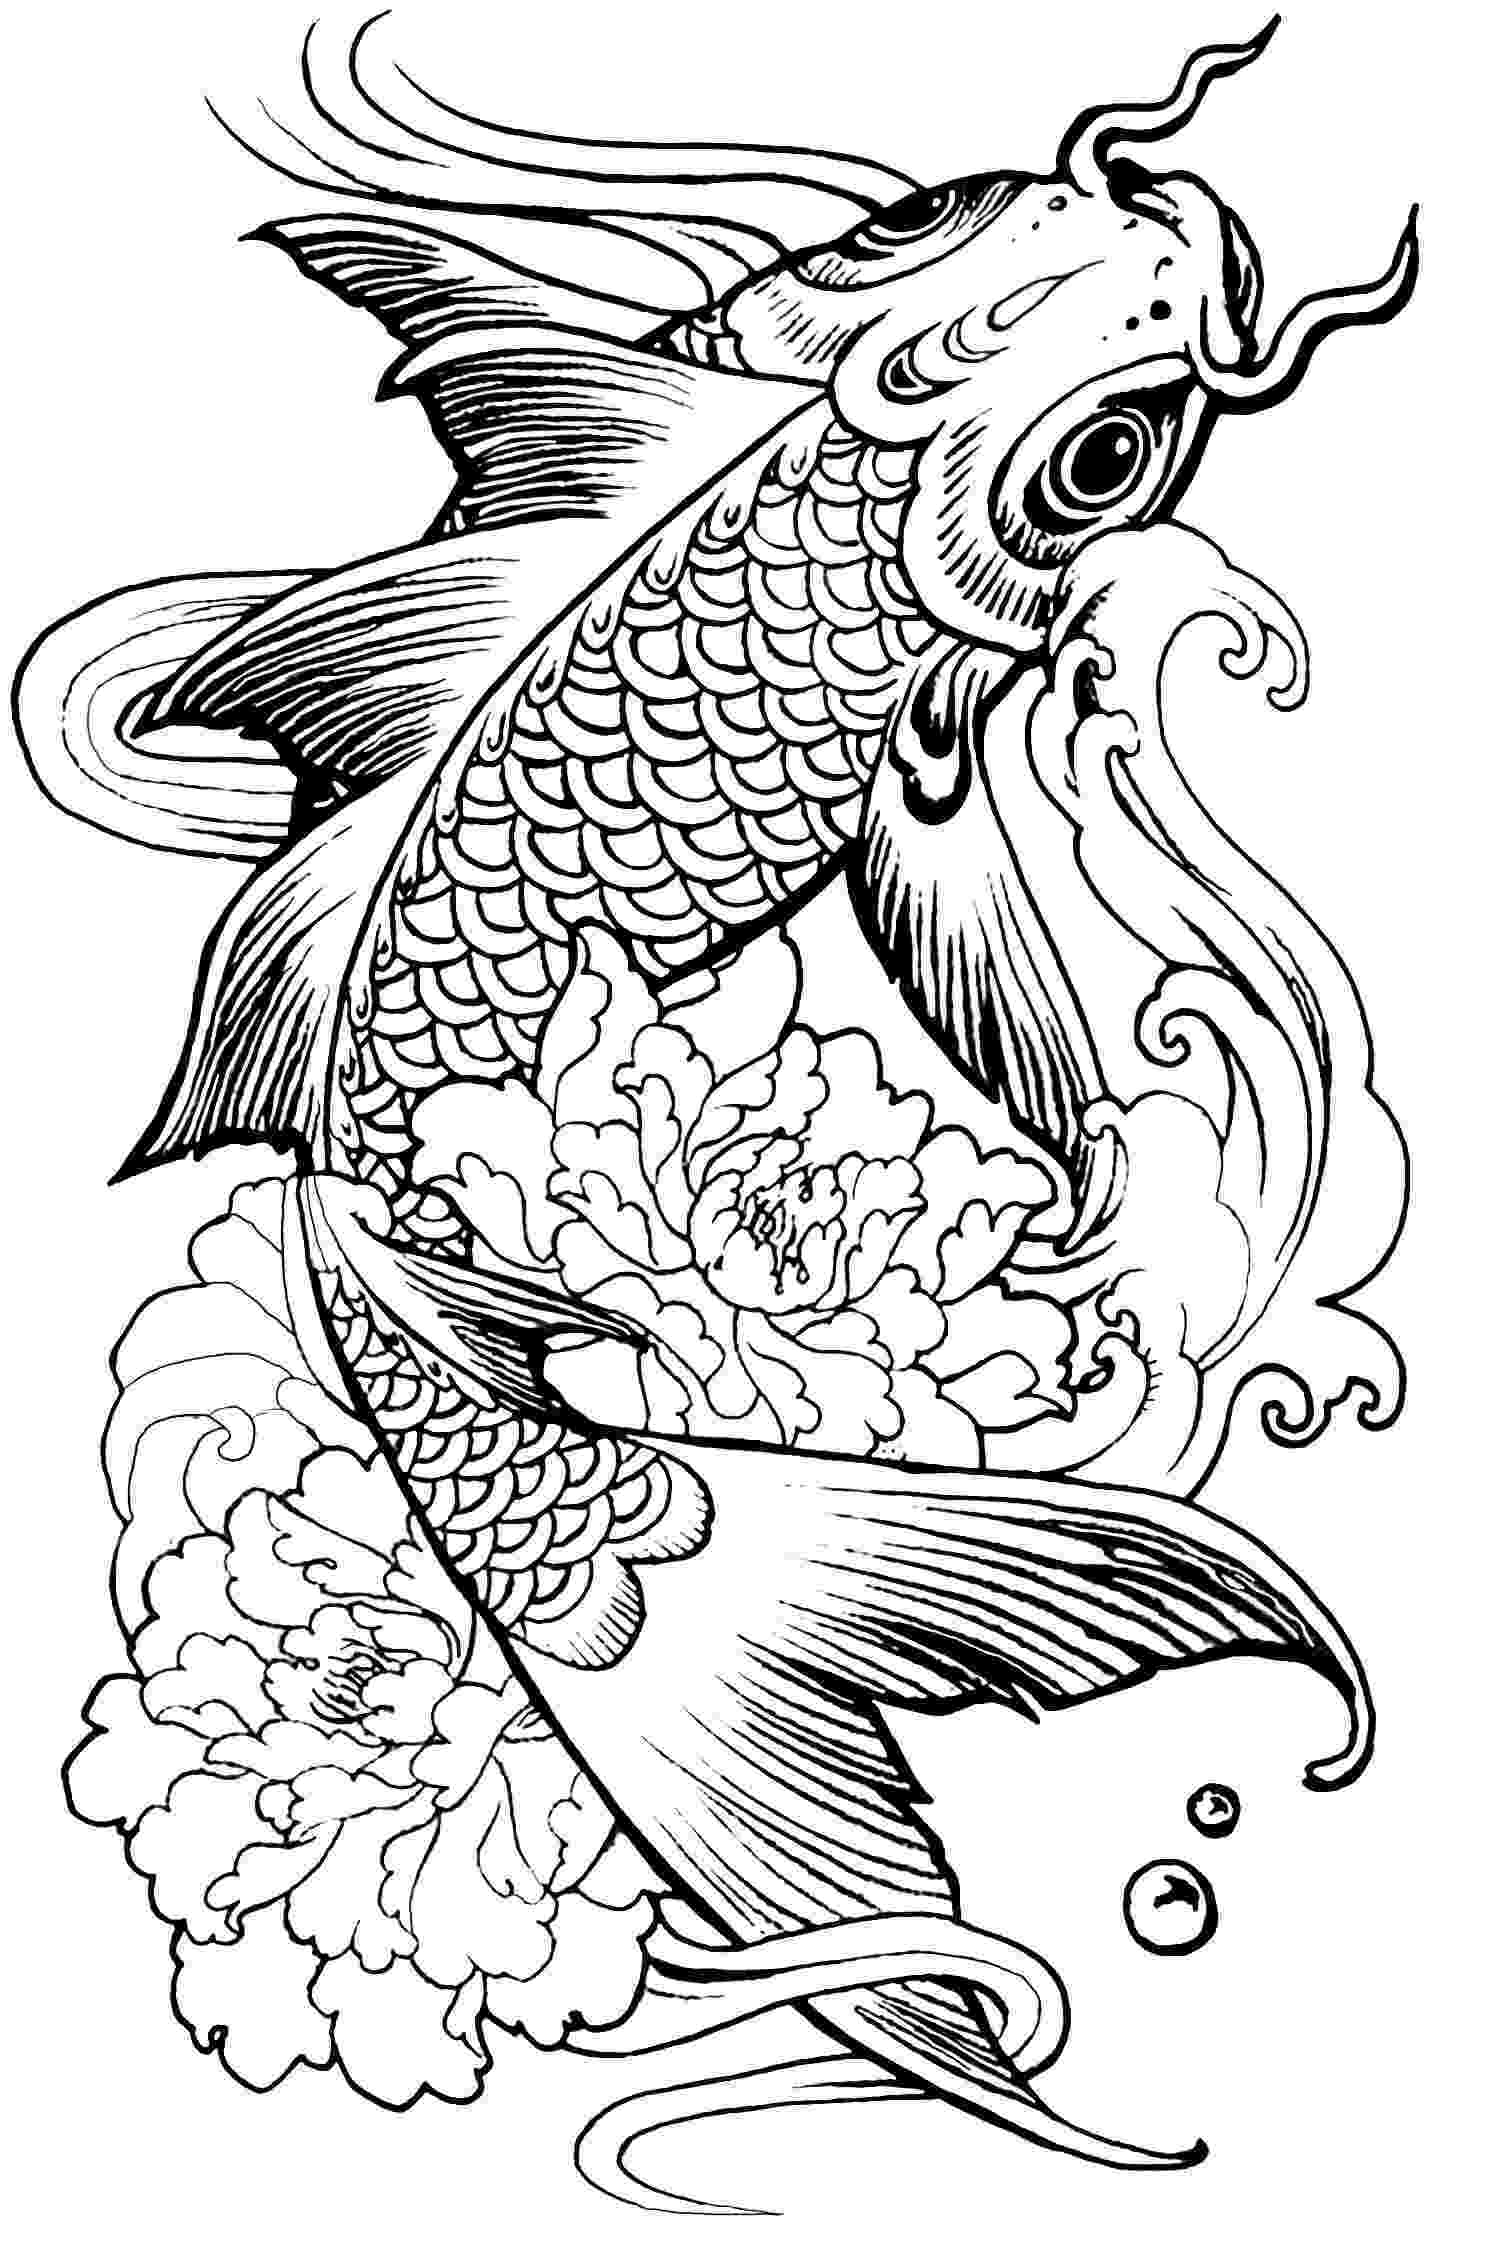 animals coloring book pages animals coloring book pages book pages animals coloring